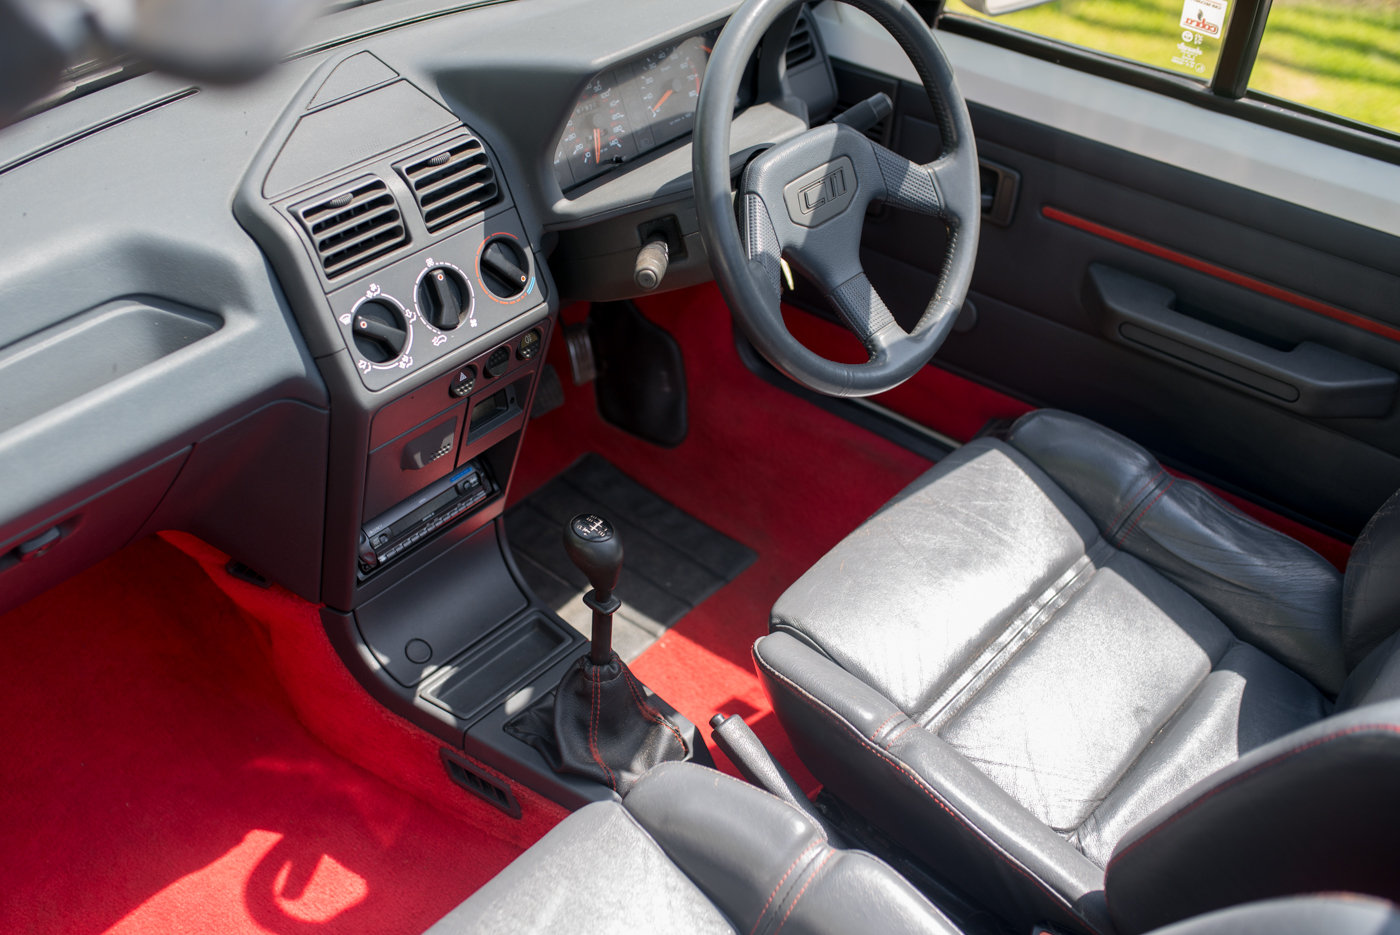 1988 Peugeot 205 CTI 1.6 Convertible For Sale (picture 6 of 6)